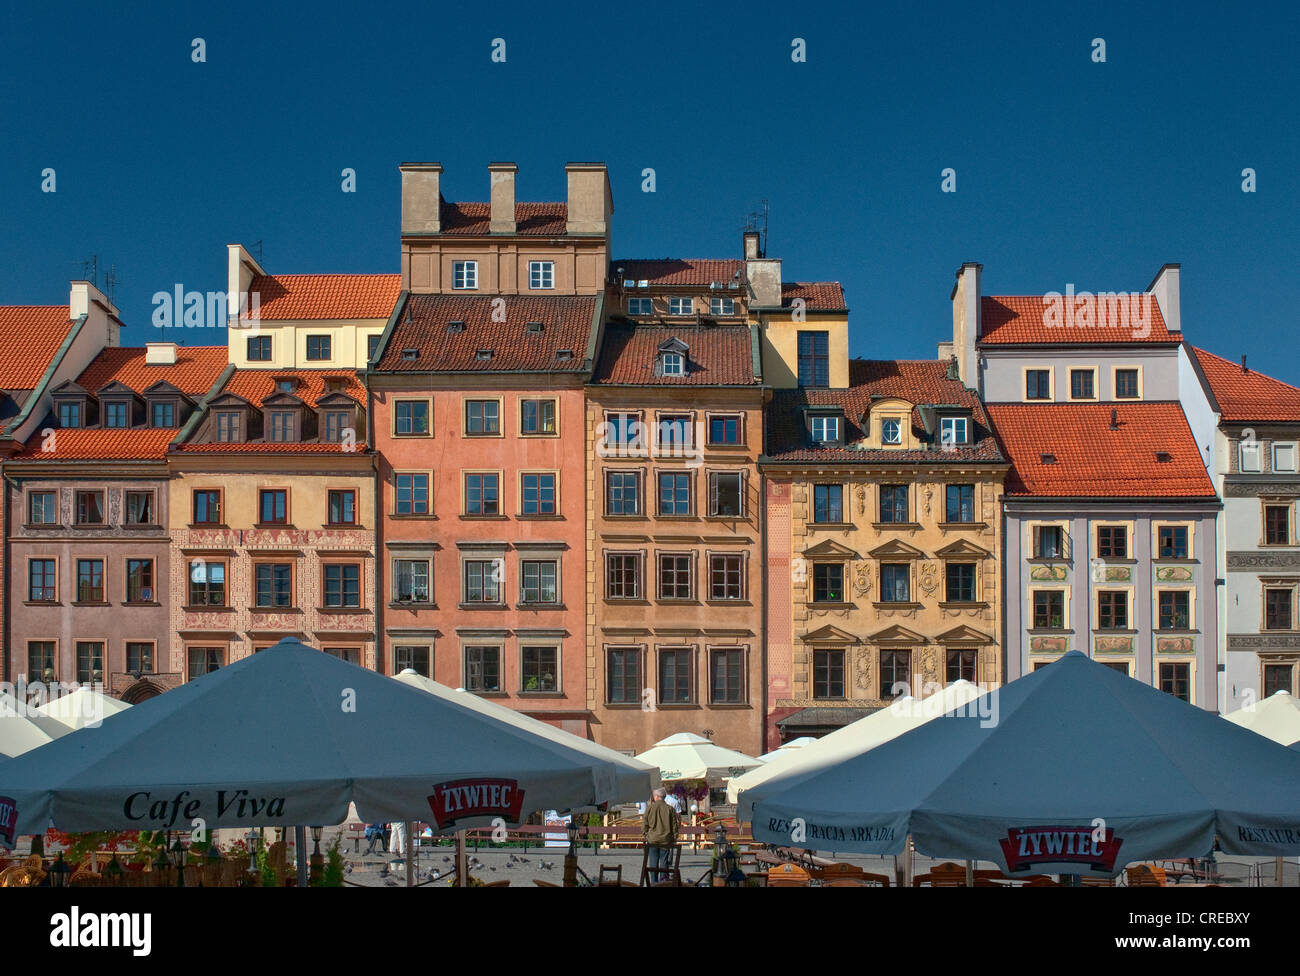 Burghers houses and parasols at open-air cafes in Old Town Market Square in Warsaw, Poland - Stock Image